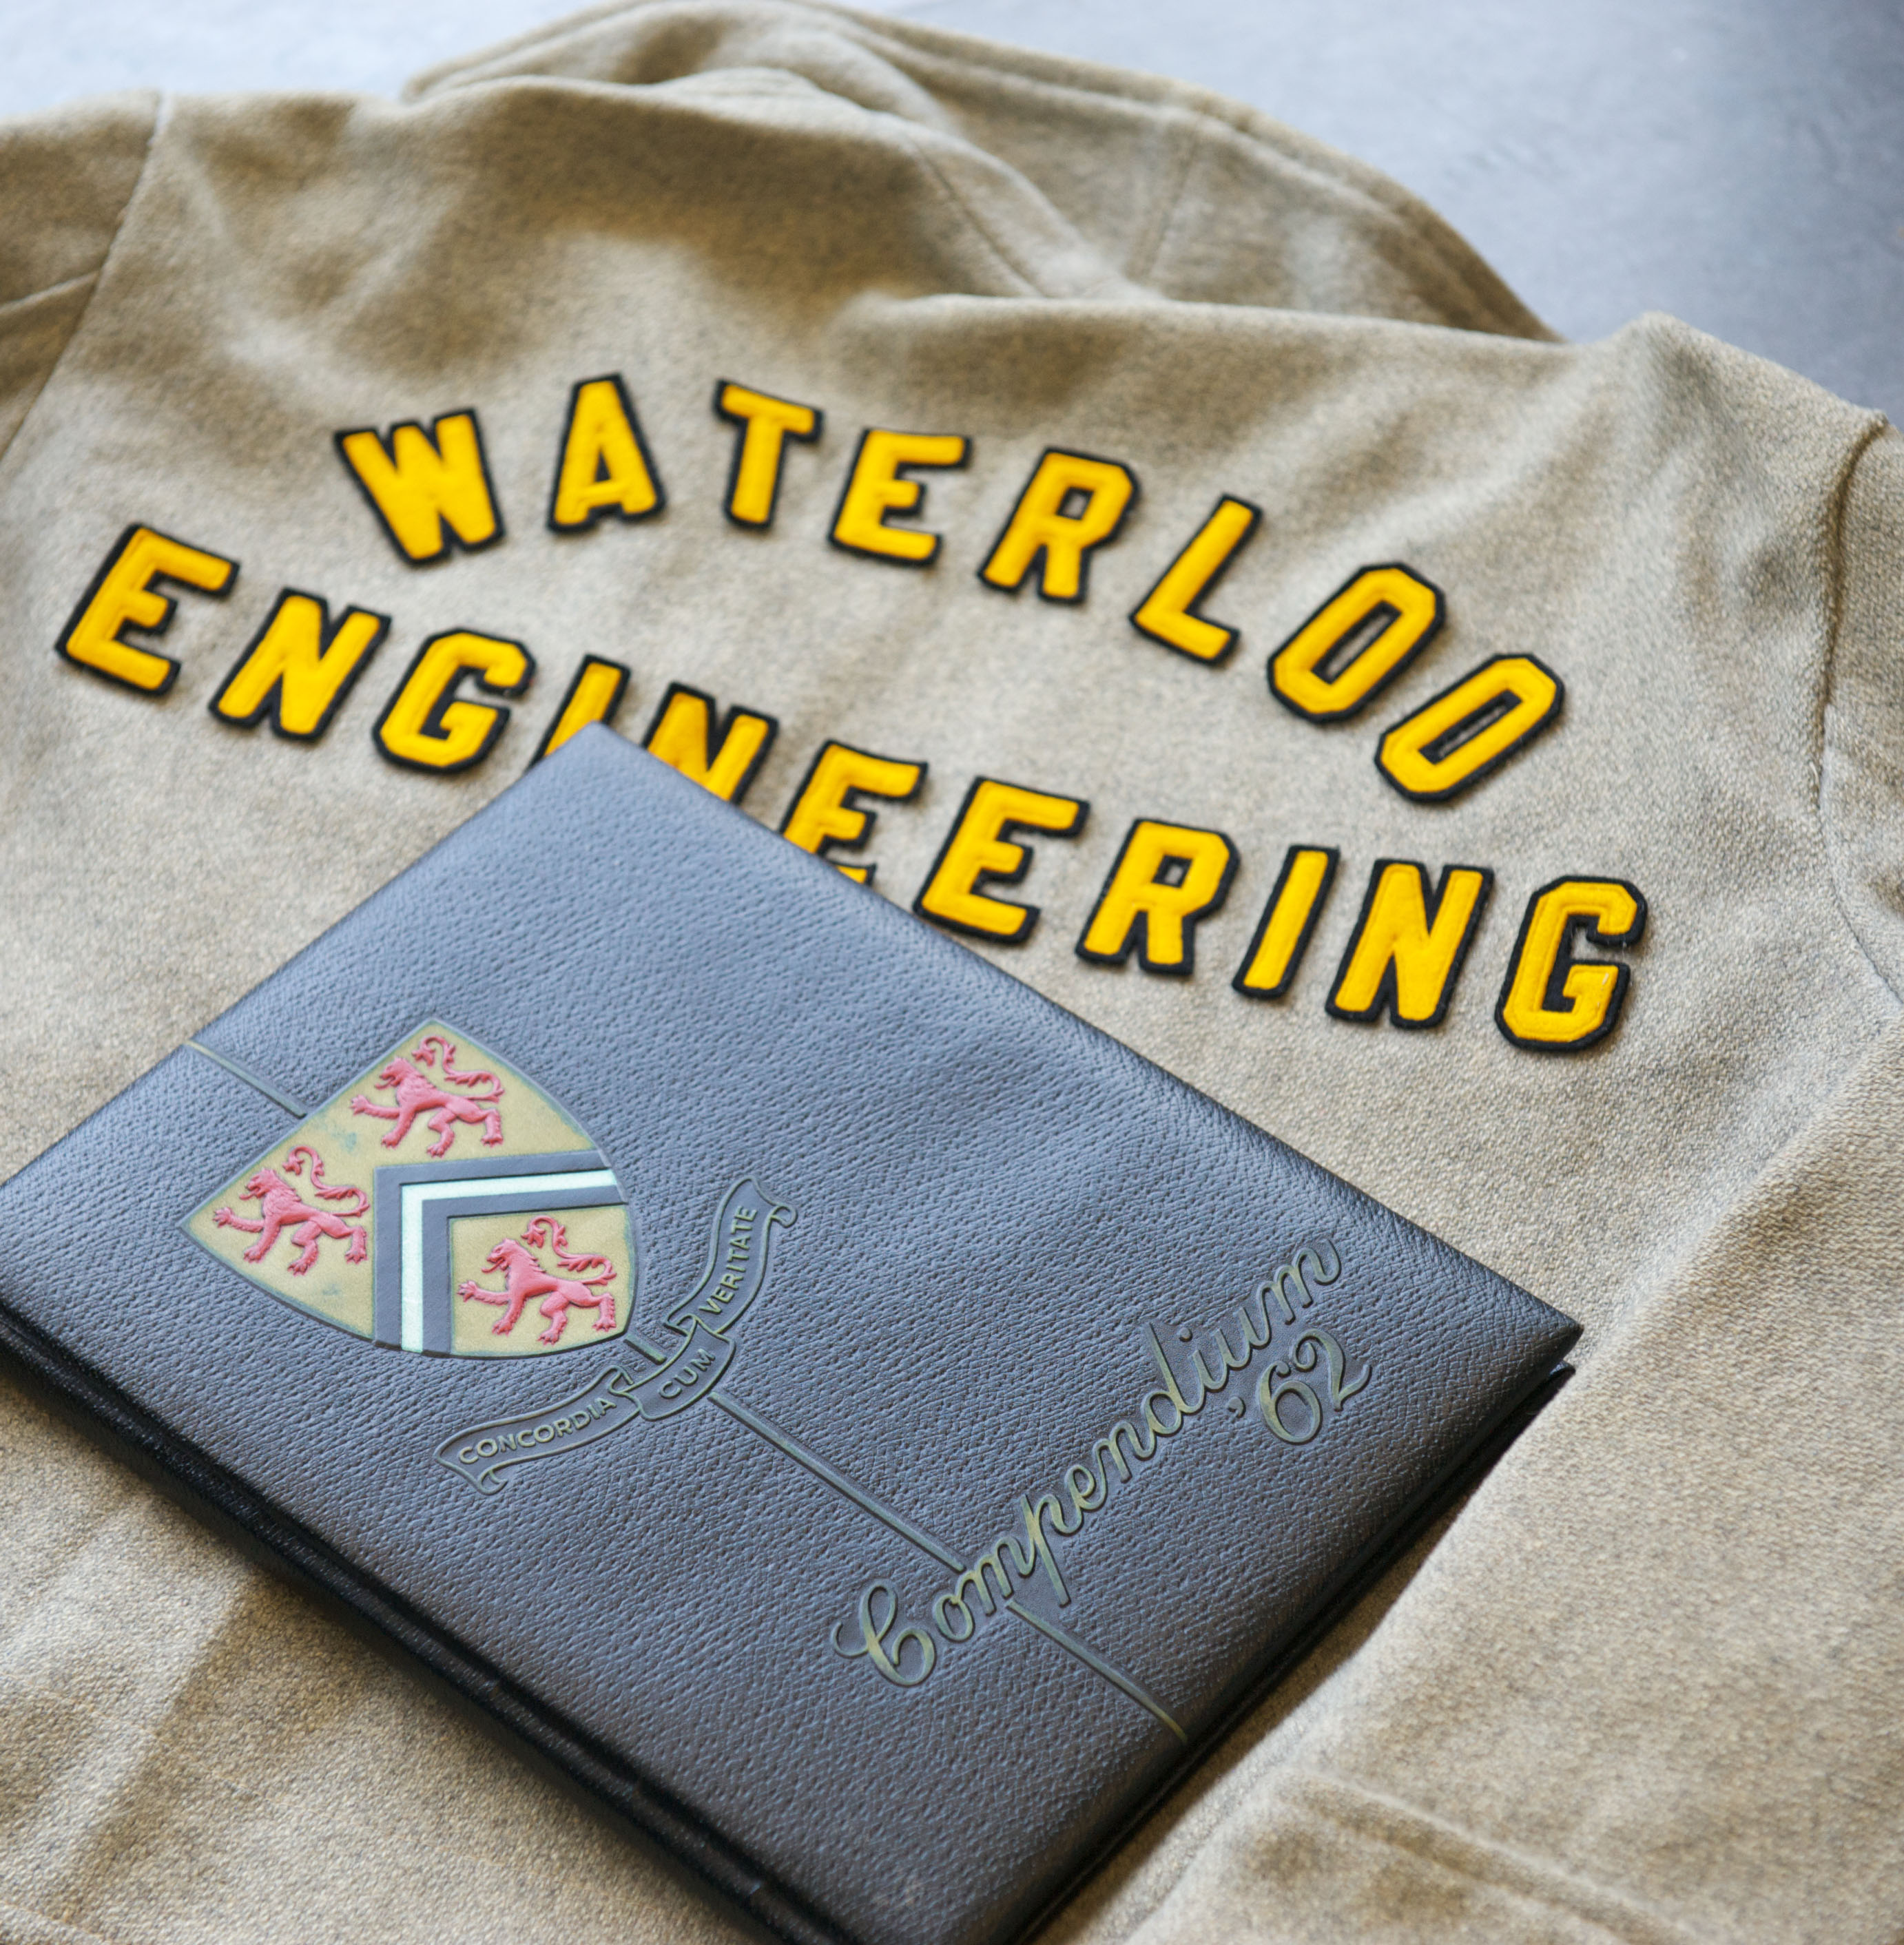 Waterloo Engineering jacket and yearbook